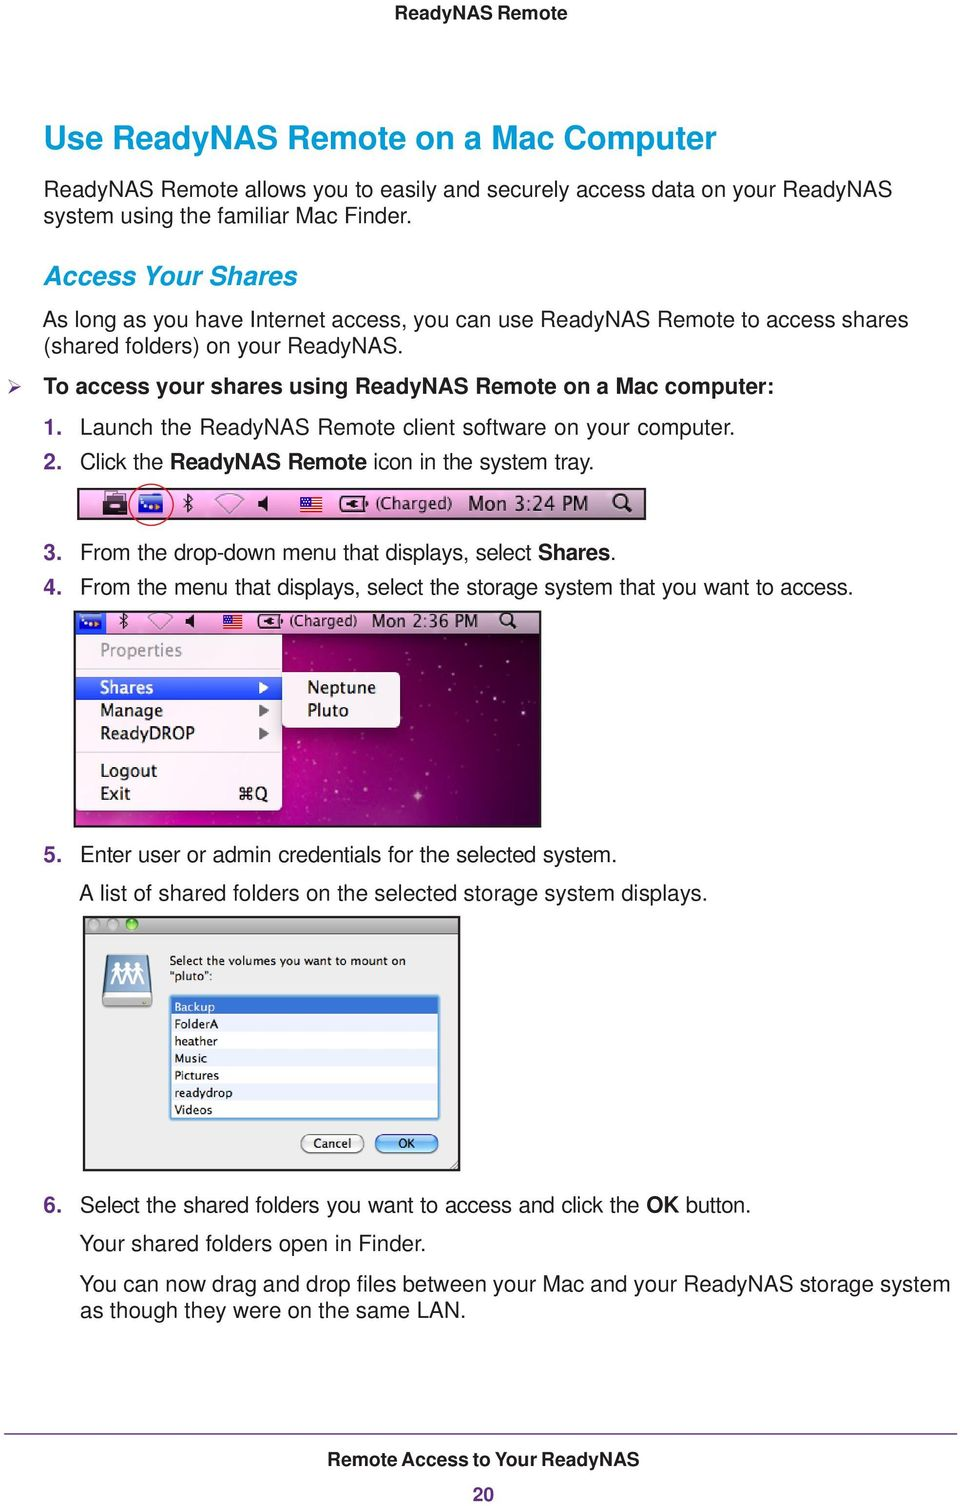 To access your shares using ReadyNAS Remote on a Mac computer: 1. Launch the ReadyNAS Remote client software on your computer. 2. Click the ReadyNAS Remote icon in the system tray. 3.